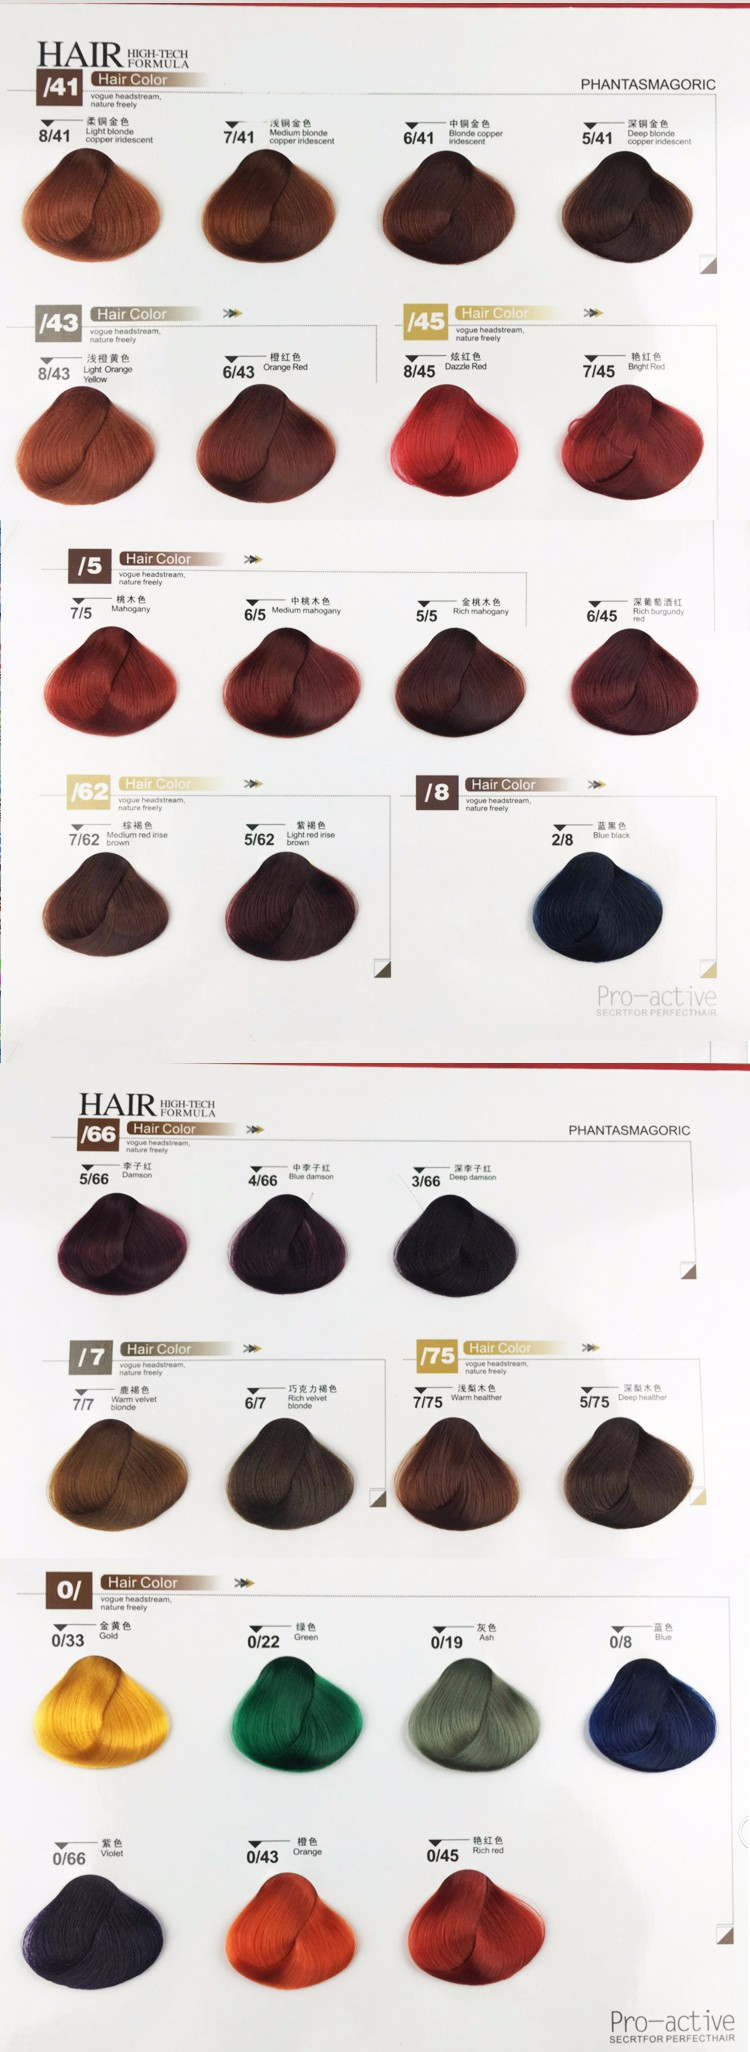 Iso professional hair color chart book for salon hair dye buy iso professional hair color chart book for salon hair dye nvjuhfo Image collections